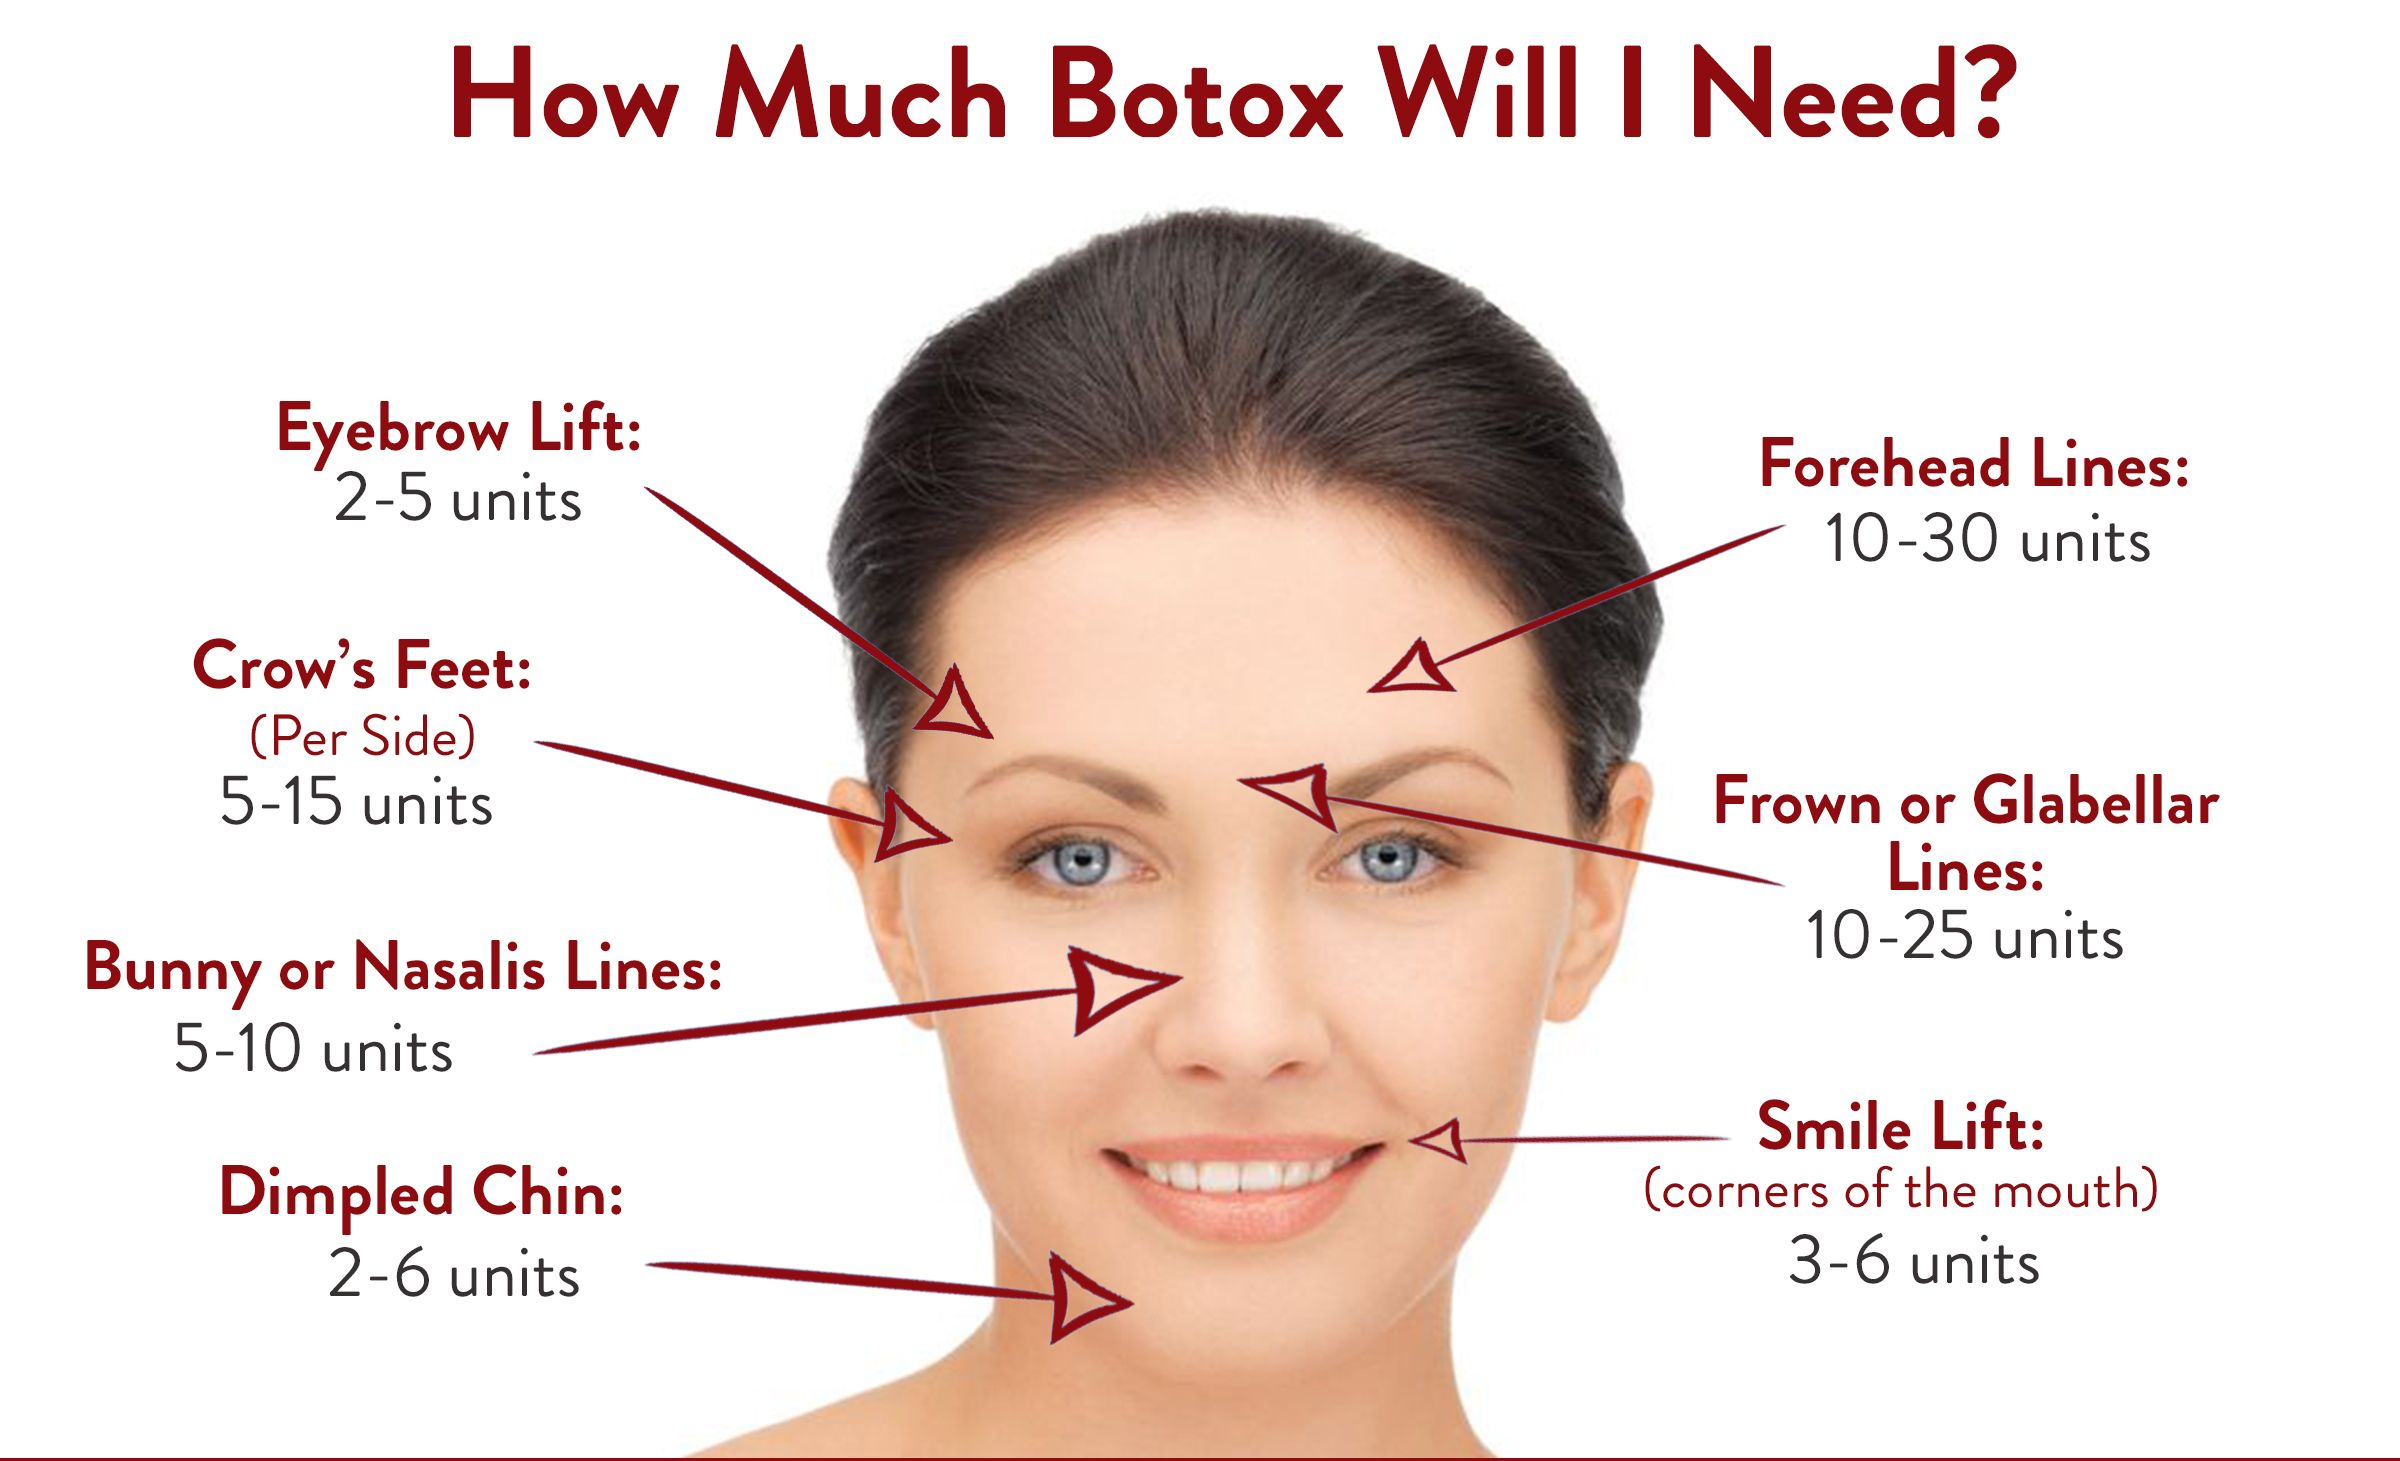 Botox Side Effects - How Can I Avoid Them?